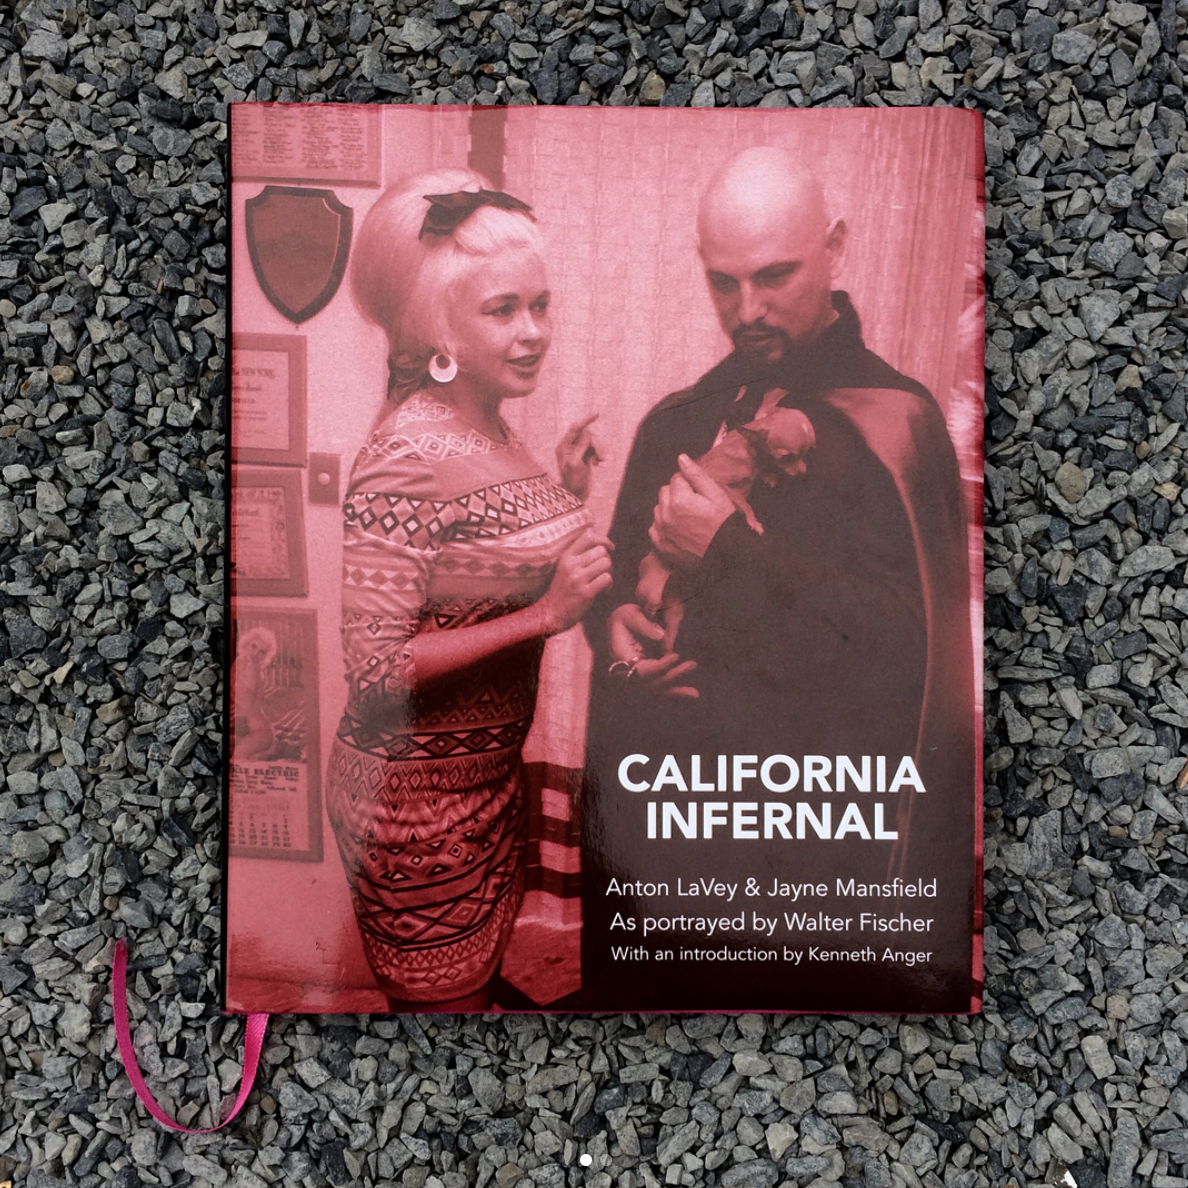 When Jayne Mansfield met the Church of Satan's founder! Via Instagram/@artbookps1